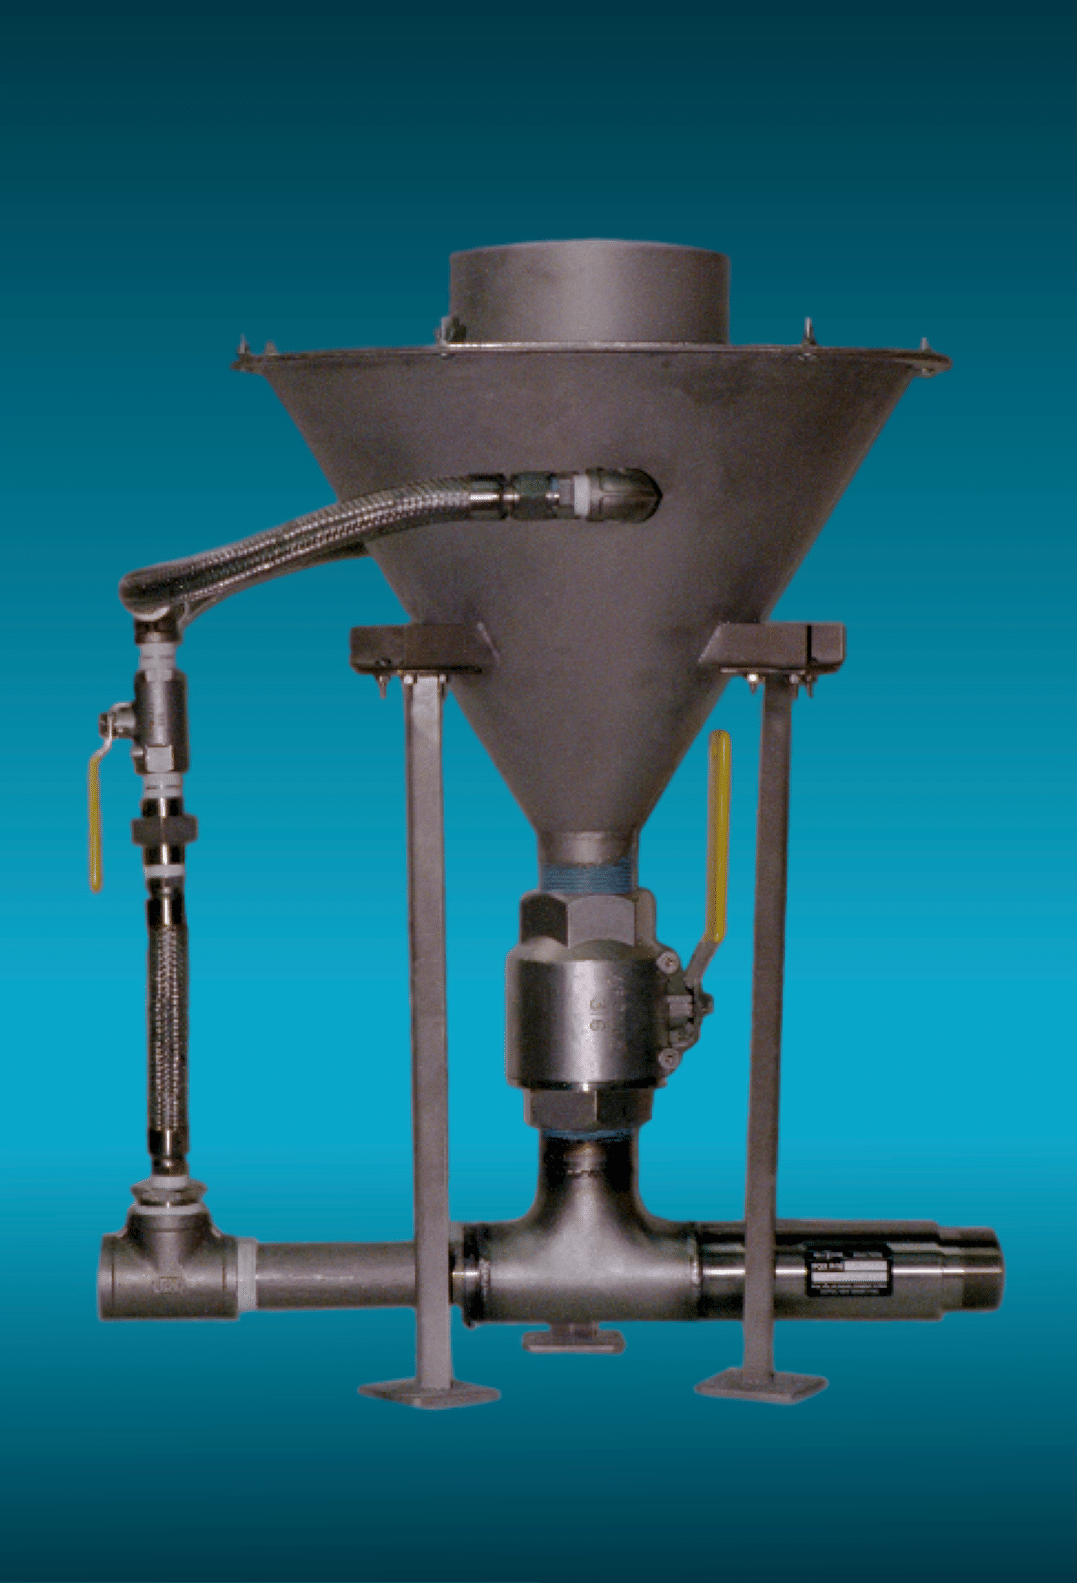 A standard industrial slurry eductor with washdown hopper for chemical, wastewater and industrial applications